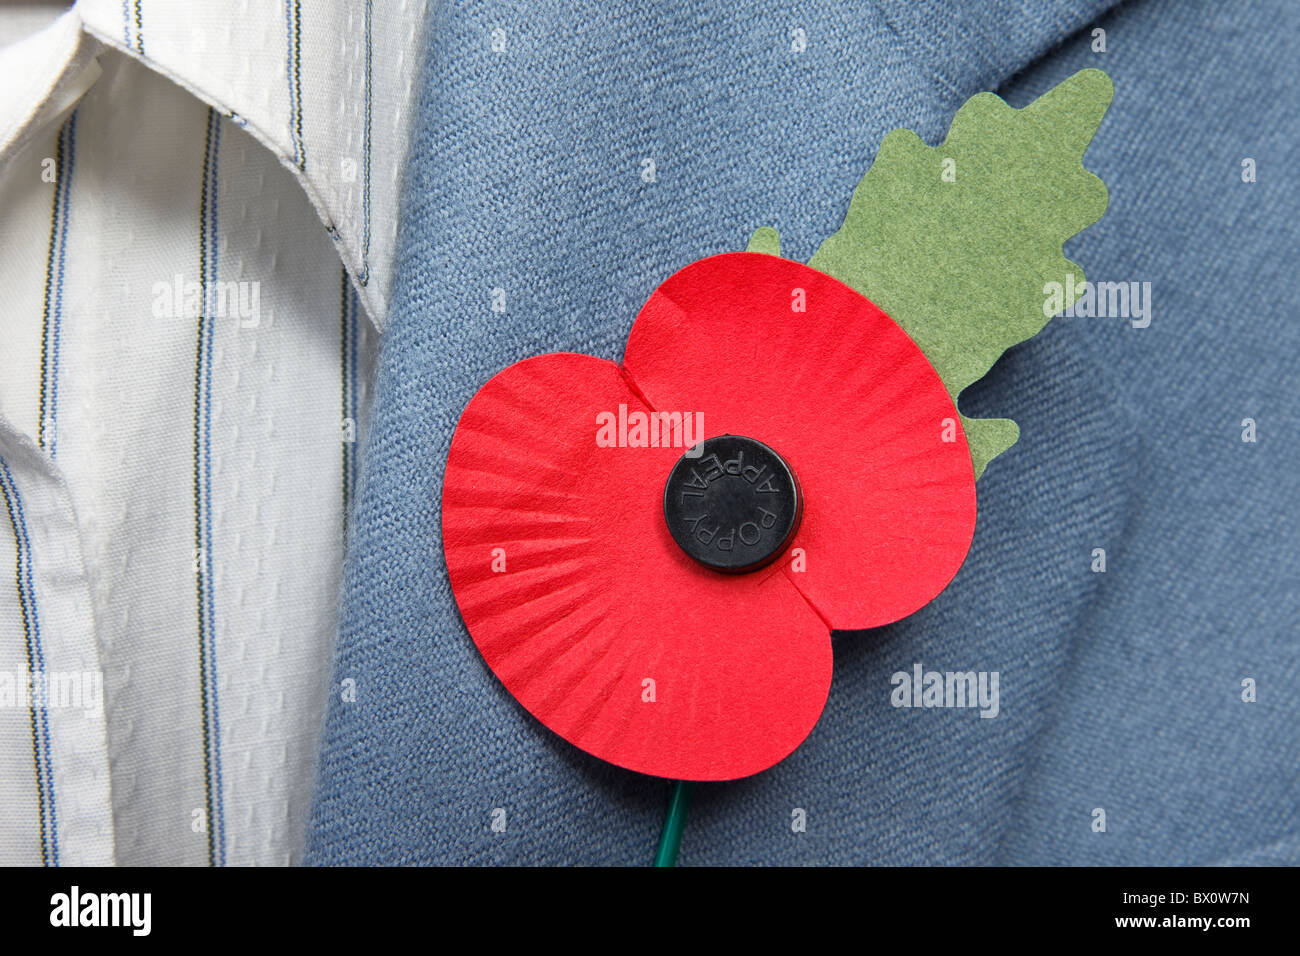 Proud person wearing red British Legion remembrance poppy on a smart blue jacket lapel. England, UK, Britain - Stock Image